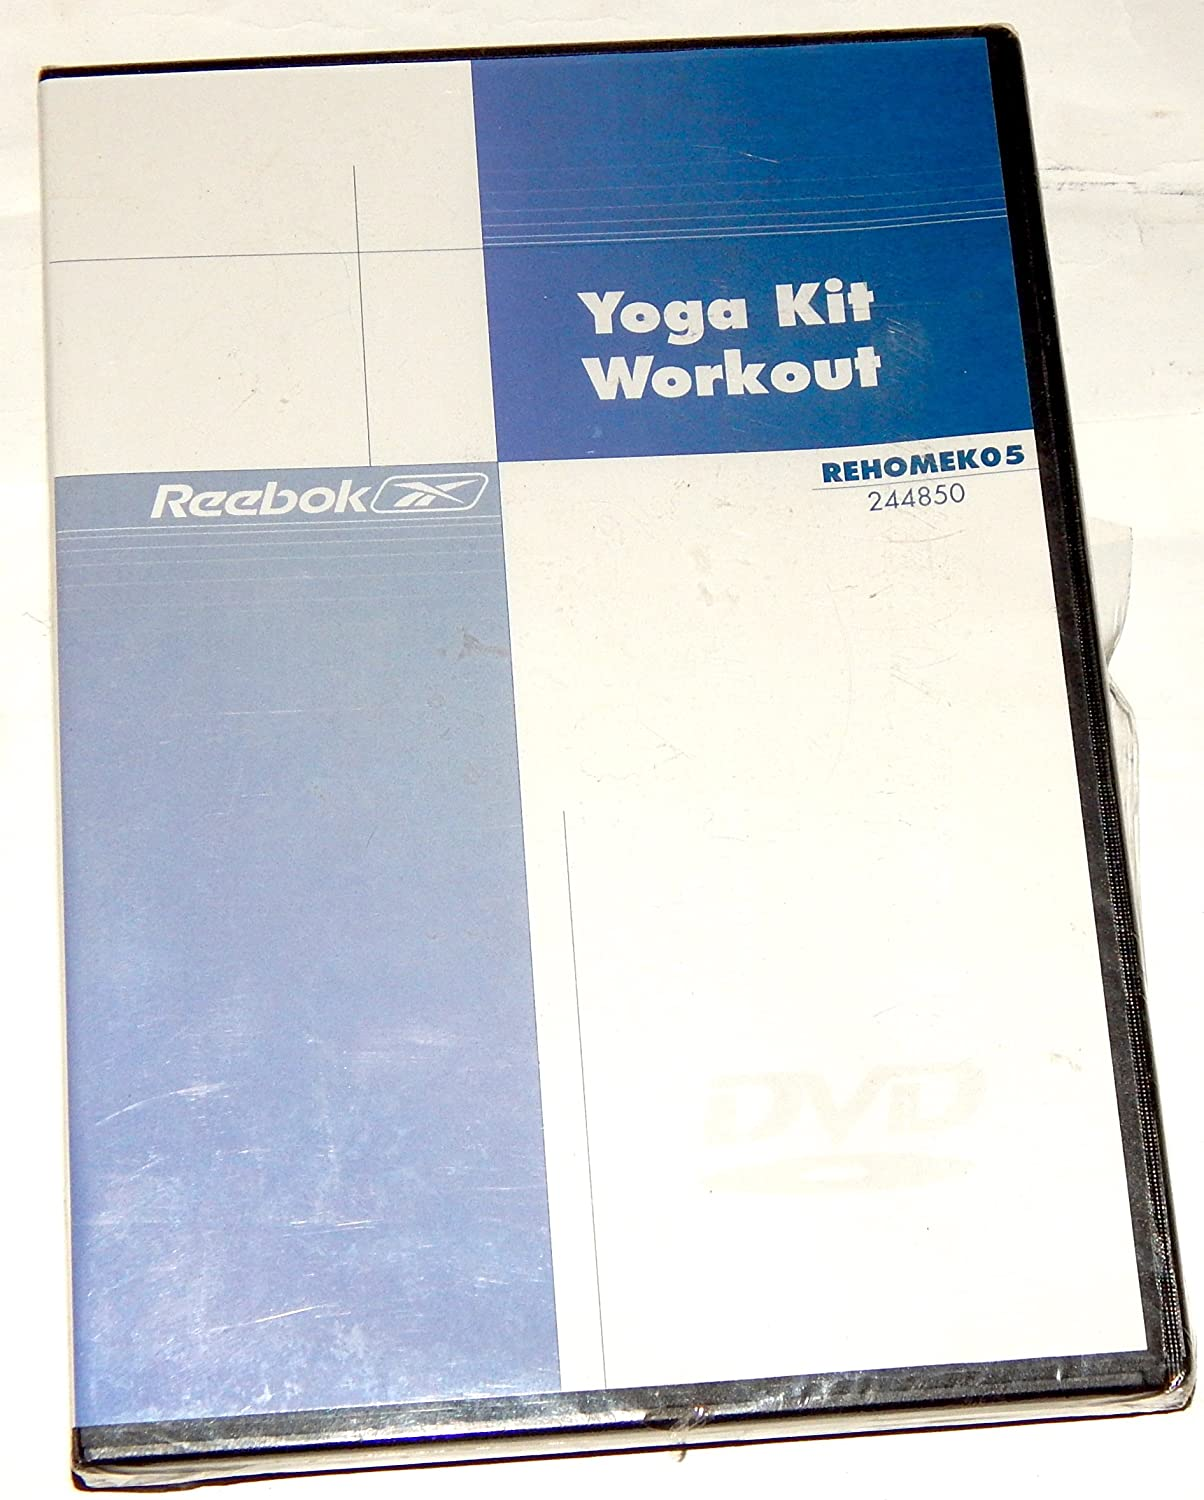 Amazon.com: Yoga Kit Workout by Reebok DVD REHOMEKO5 ...